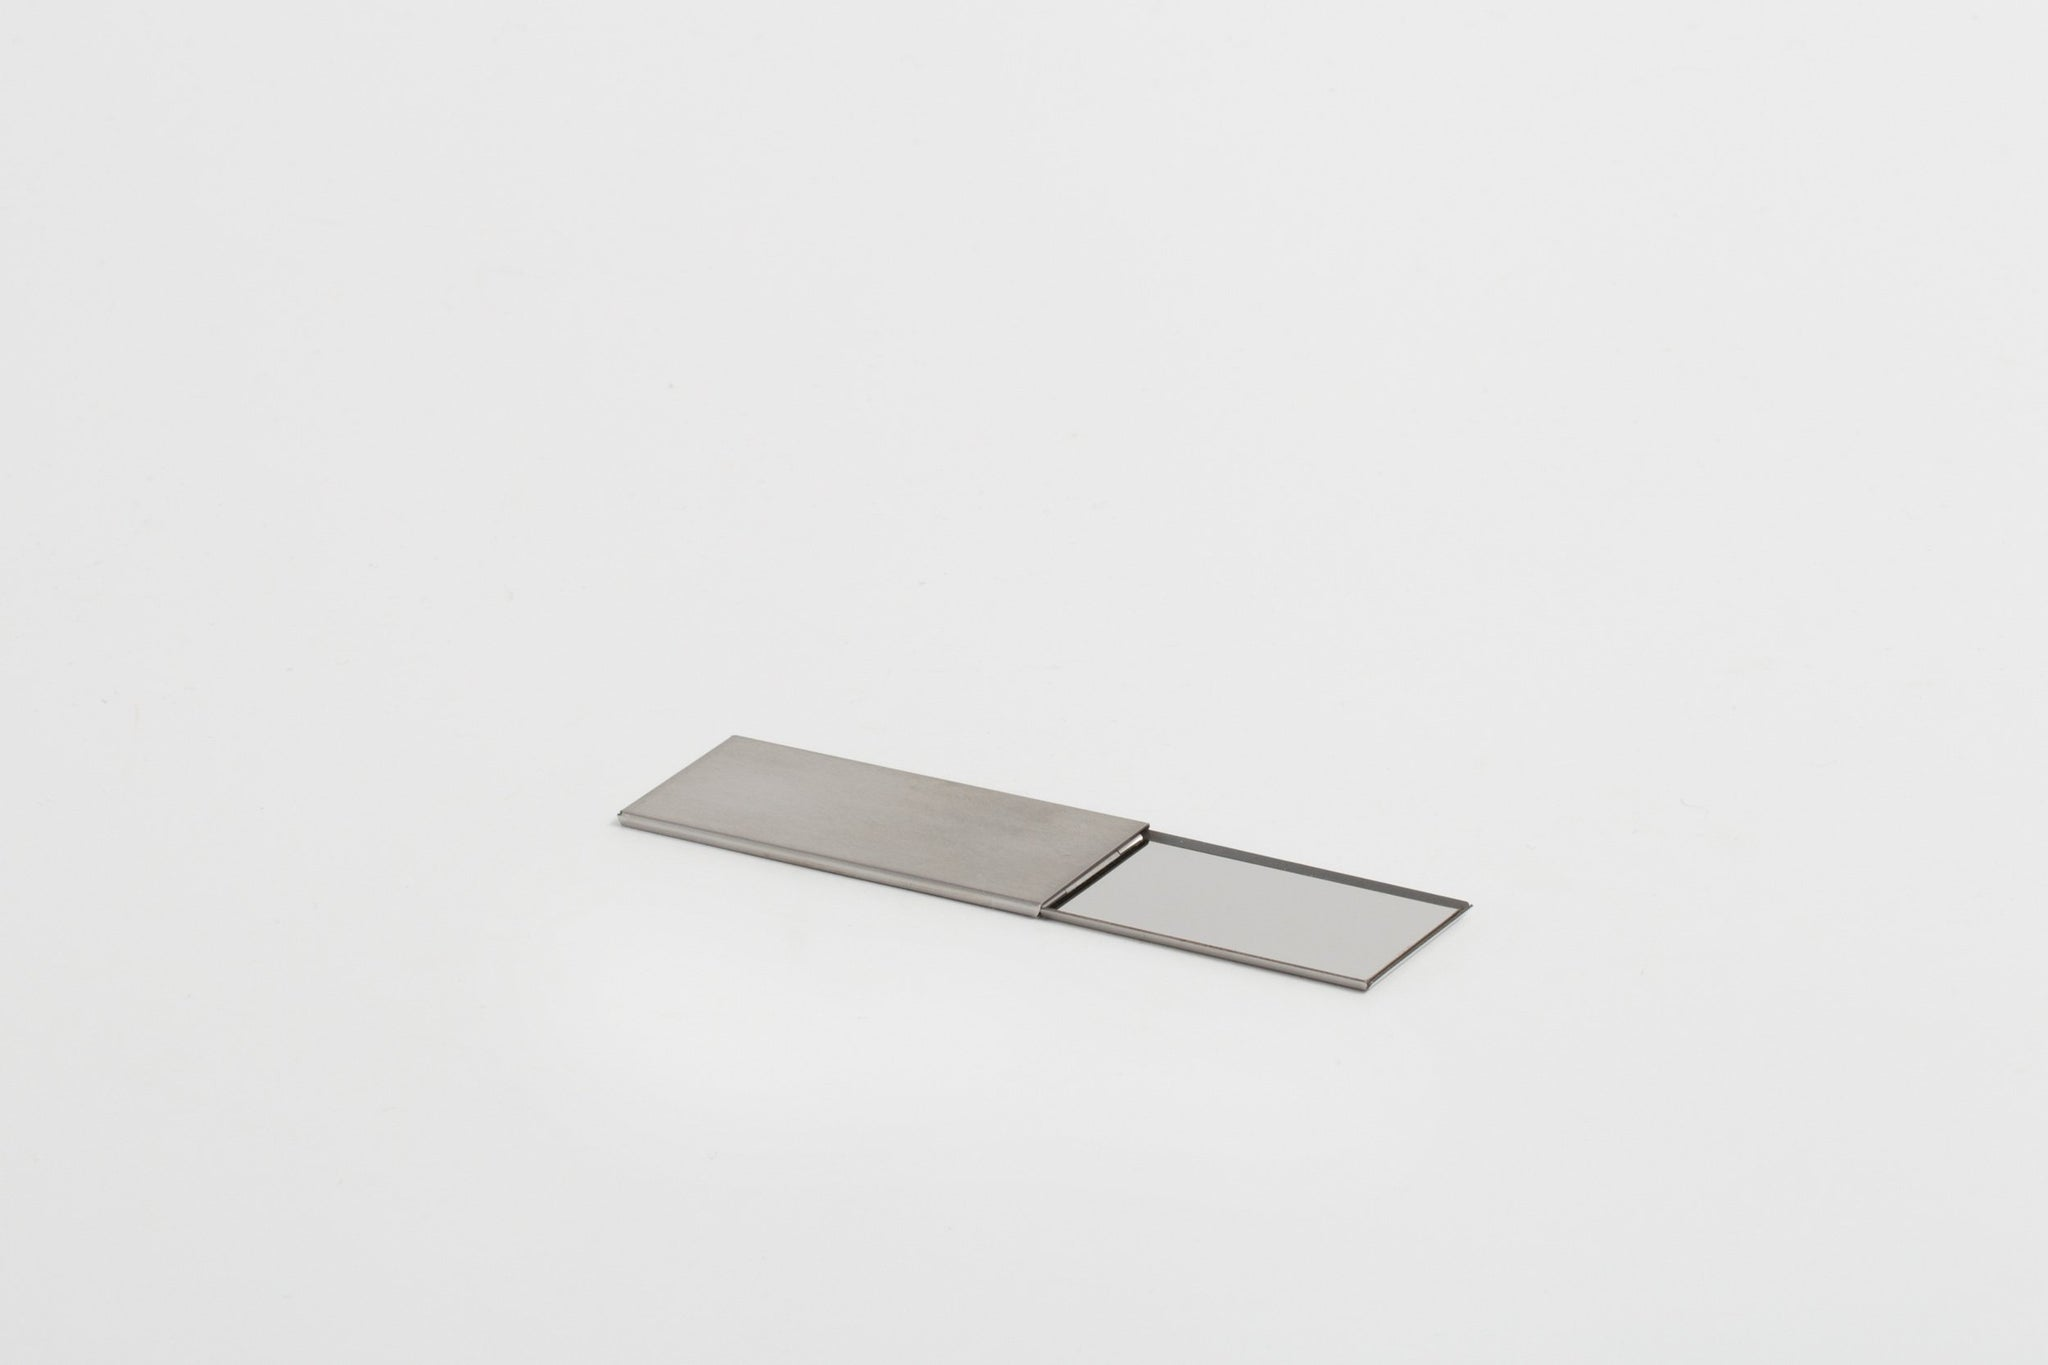 Claustrum - Compact Mirror (Straight Vibration Finish)